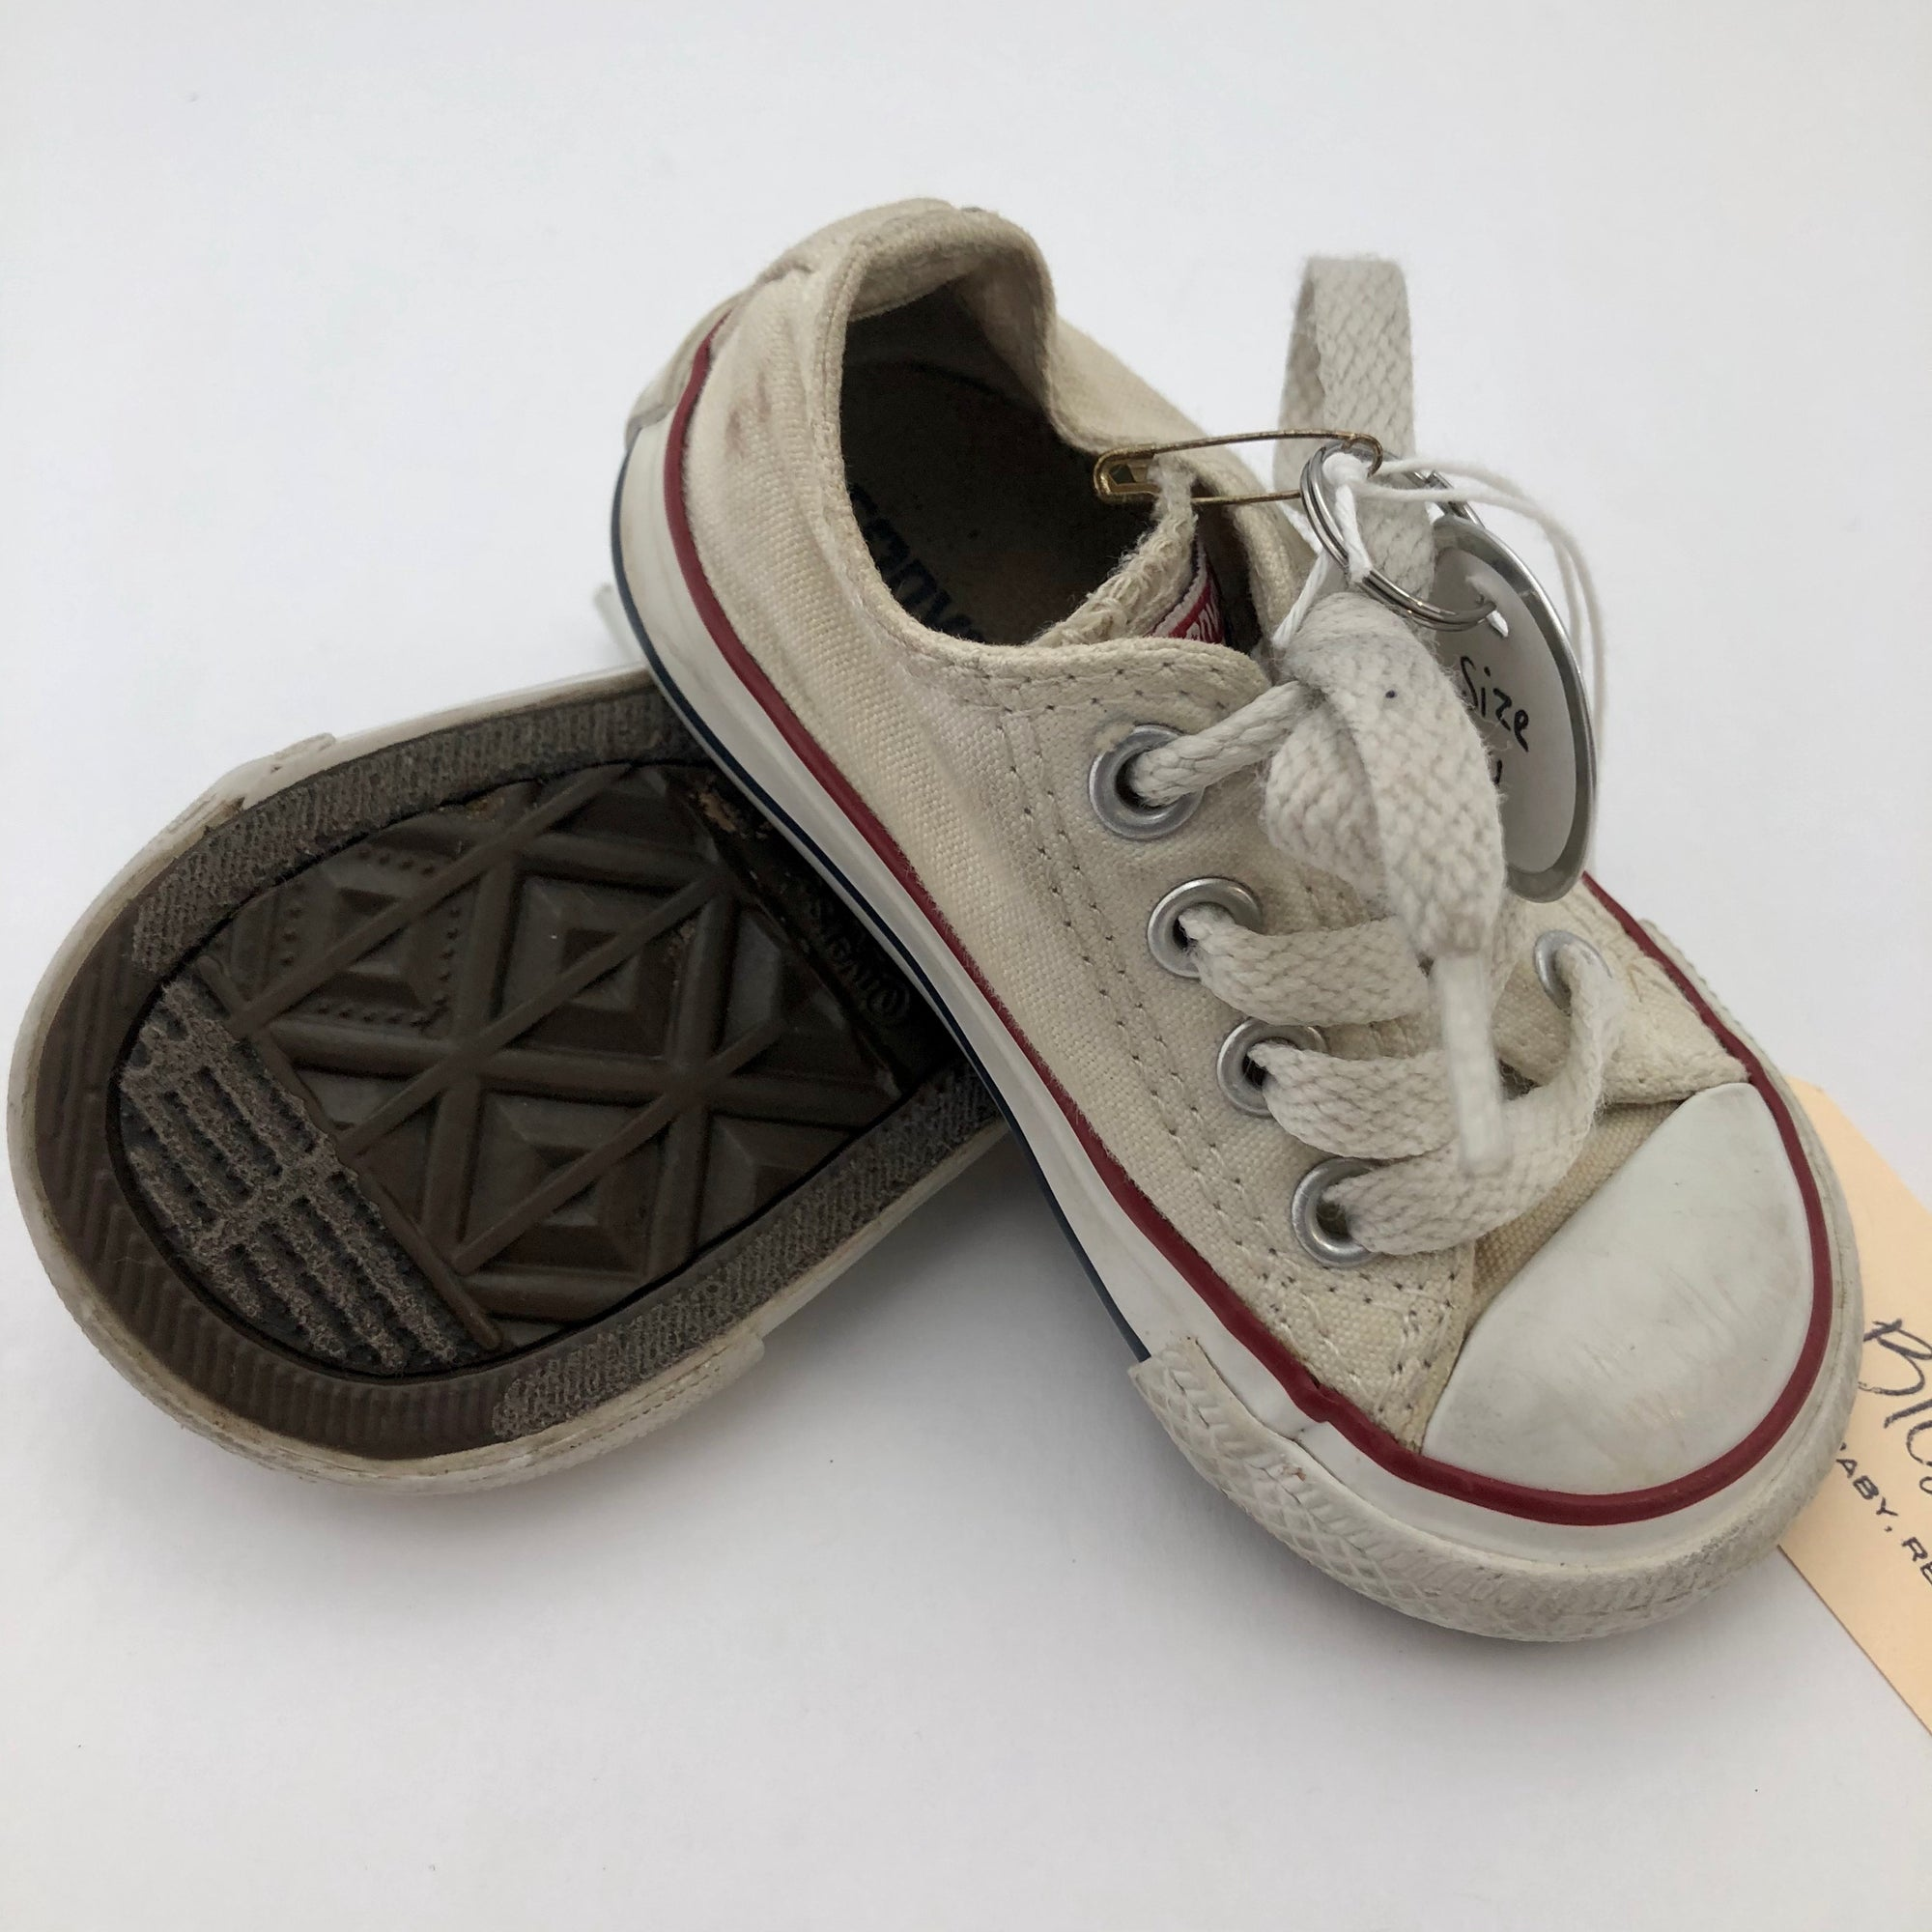 C4 Converse Chuck Taylor All Stars White Cream Shoes